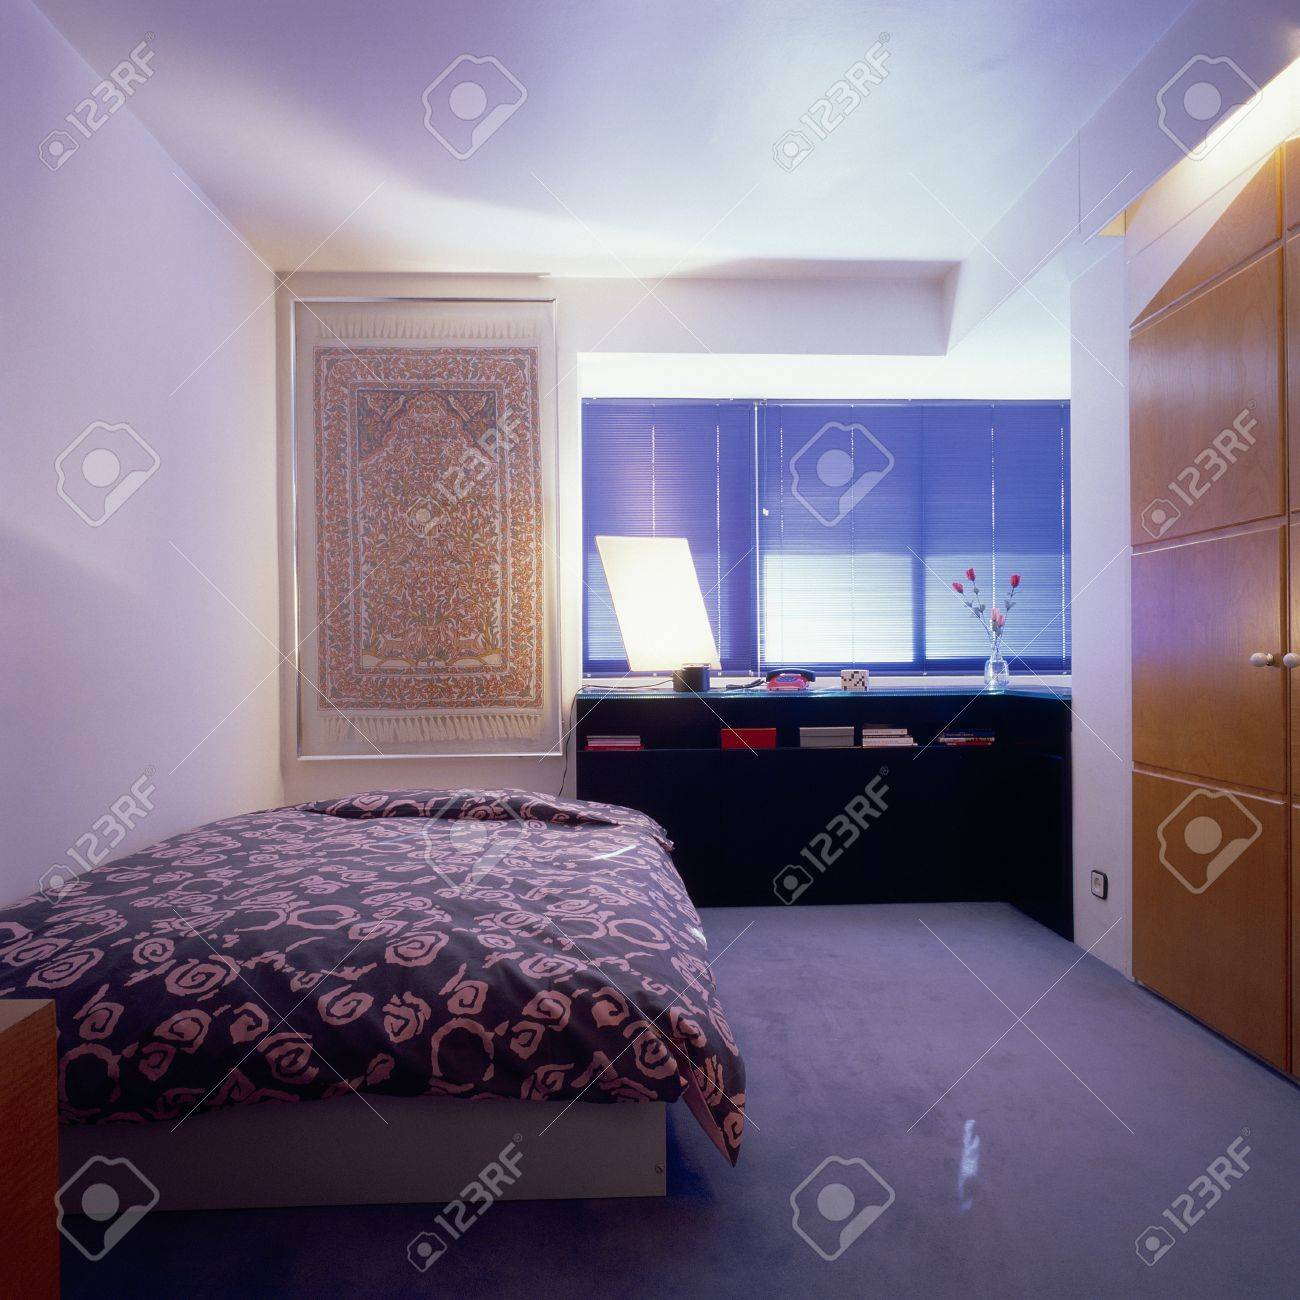 Neat Bedroom View Of A Neat Bedroom Stock Photo Picture And Royalty Free Image